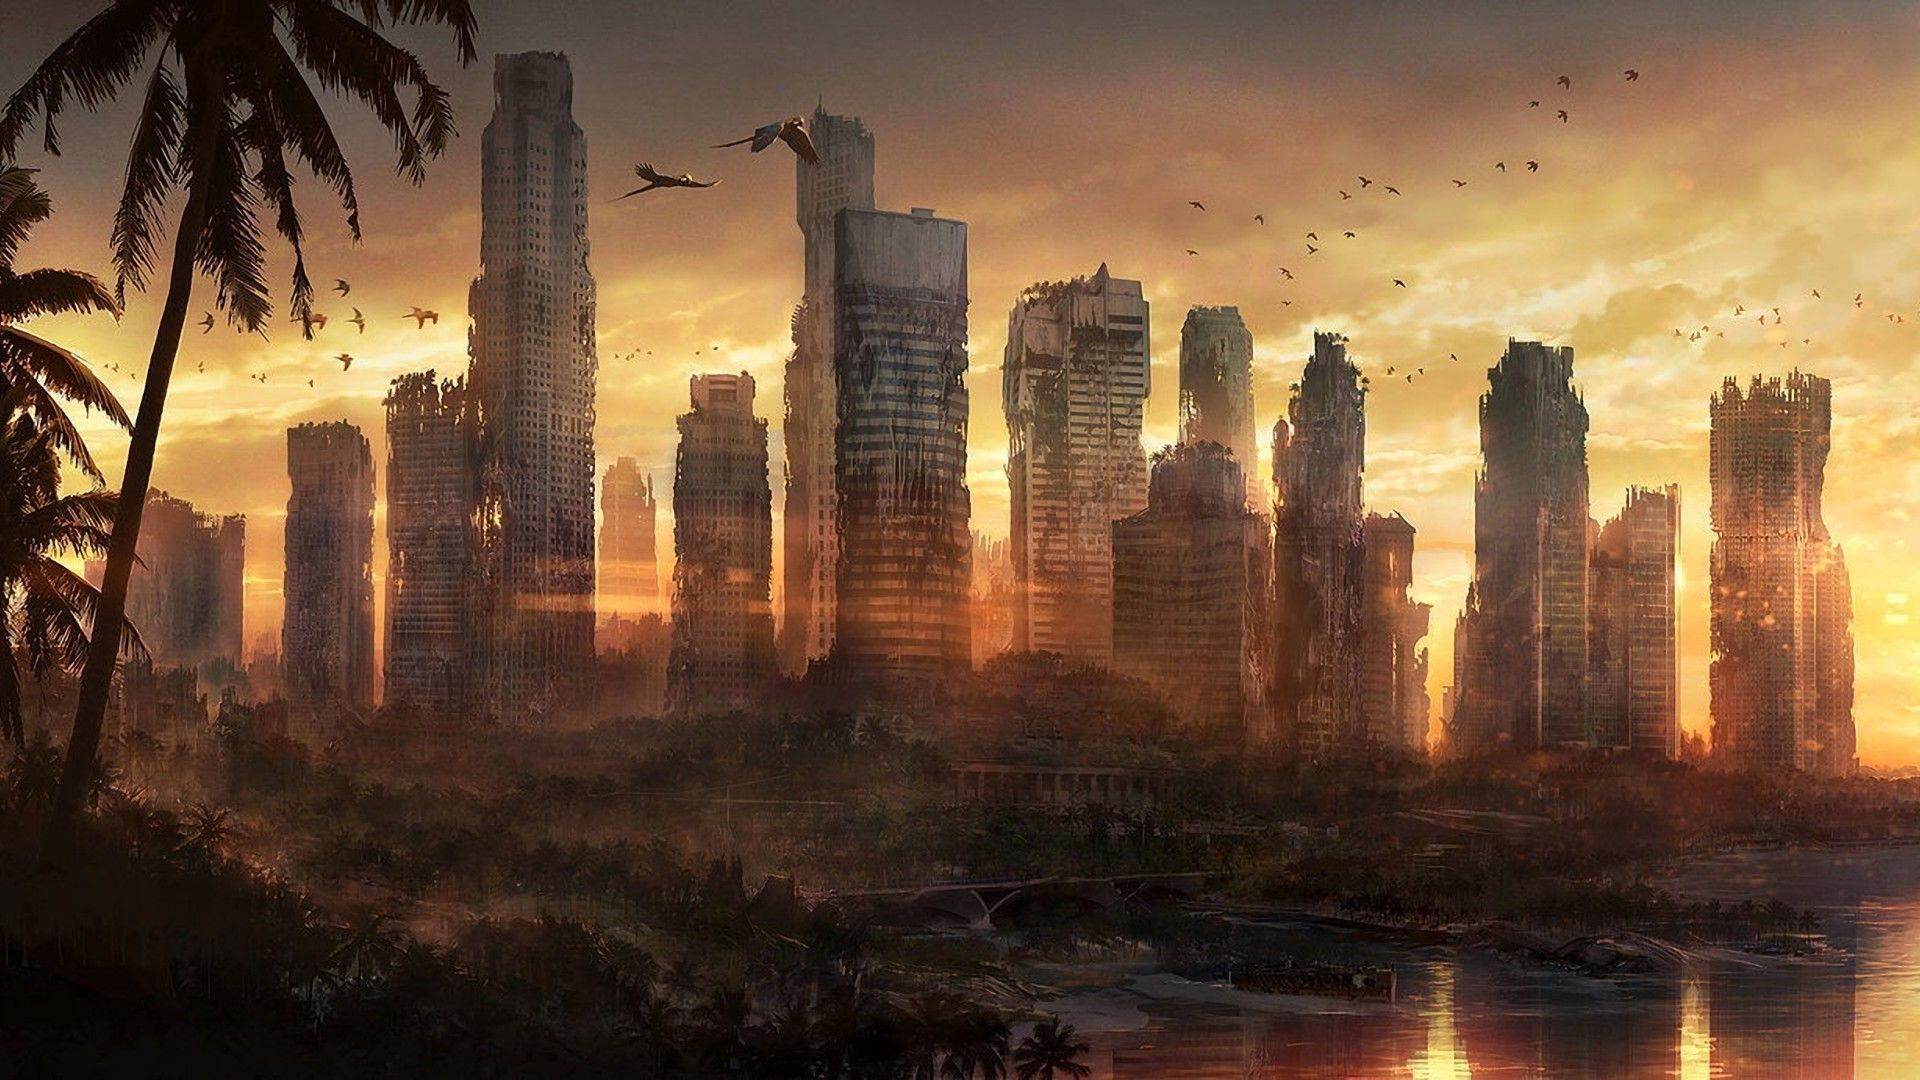 Hd wallpaper zone - Post Apocalyptic Wallpaper Photo Wallpapers Wallpaper Zone